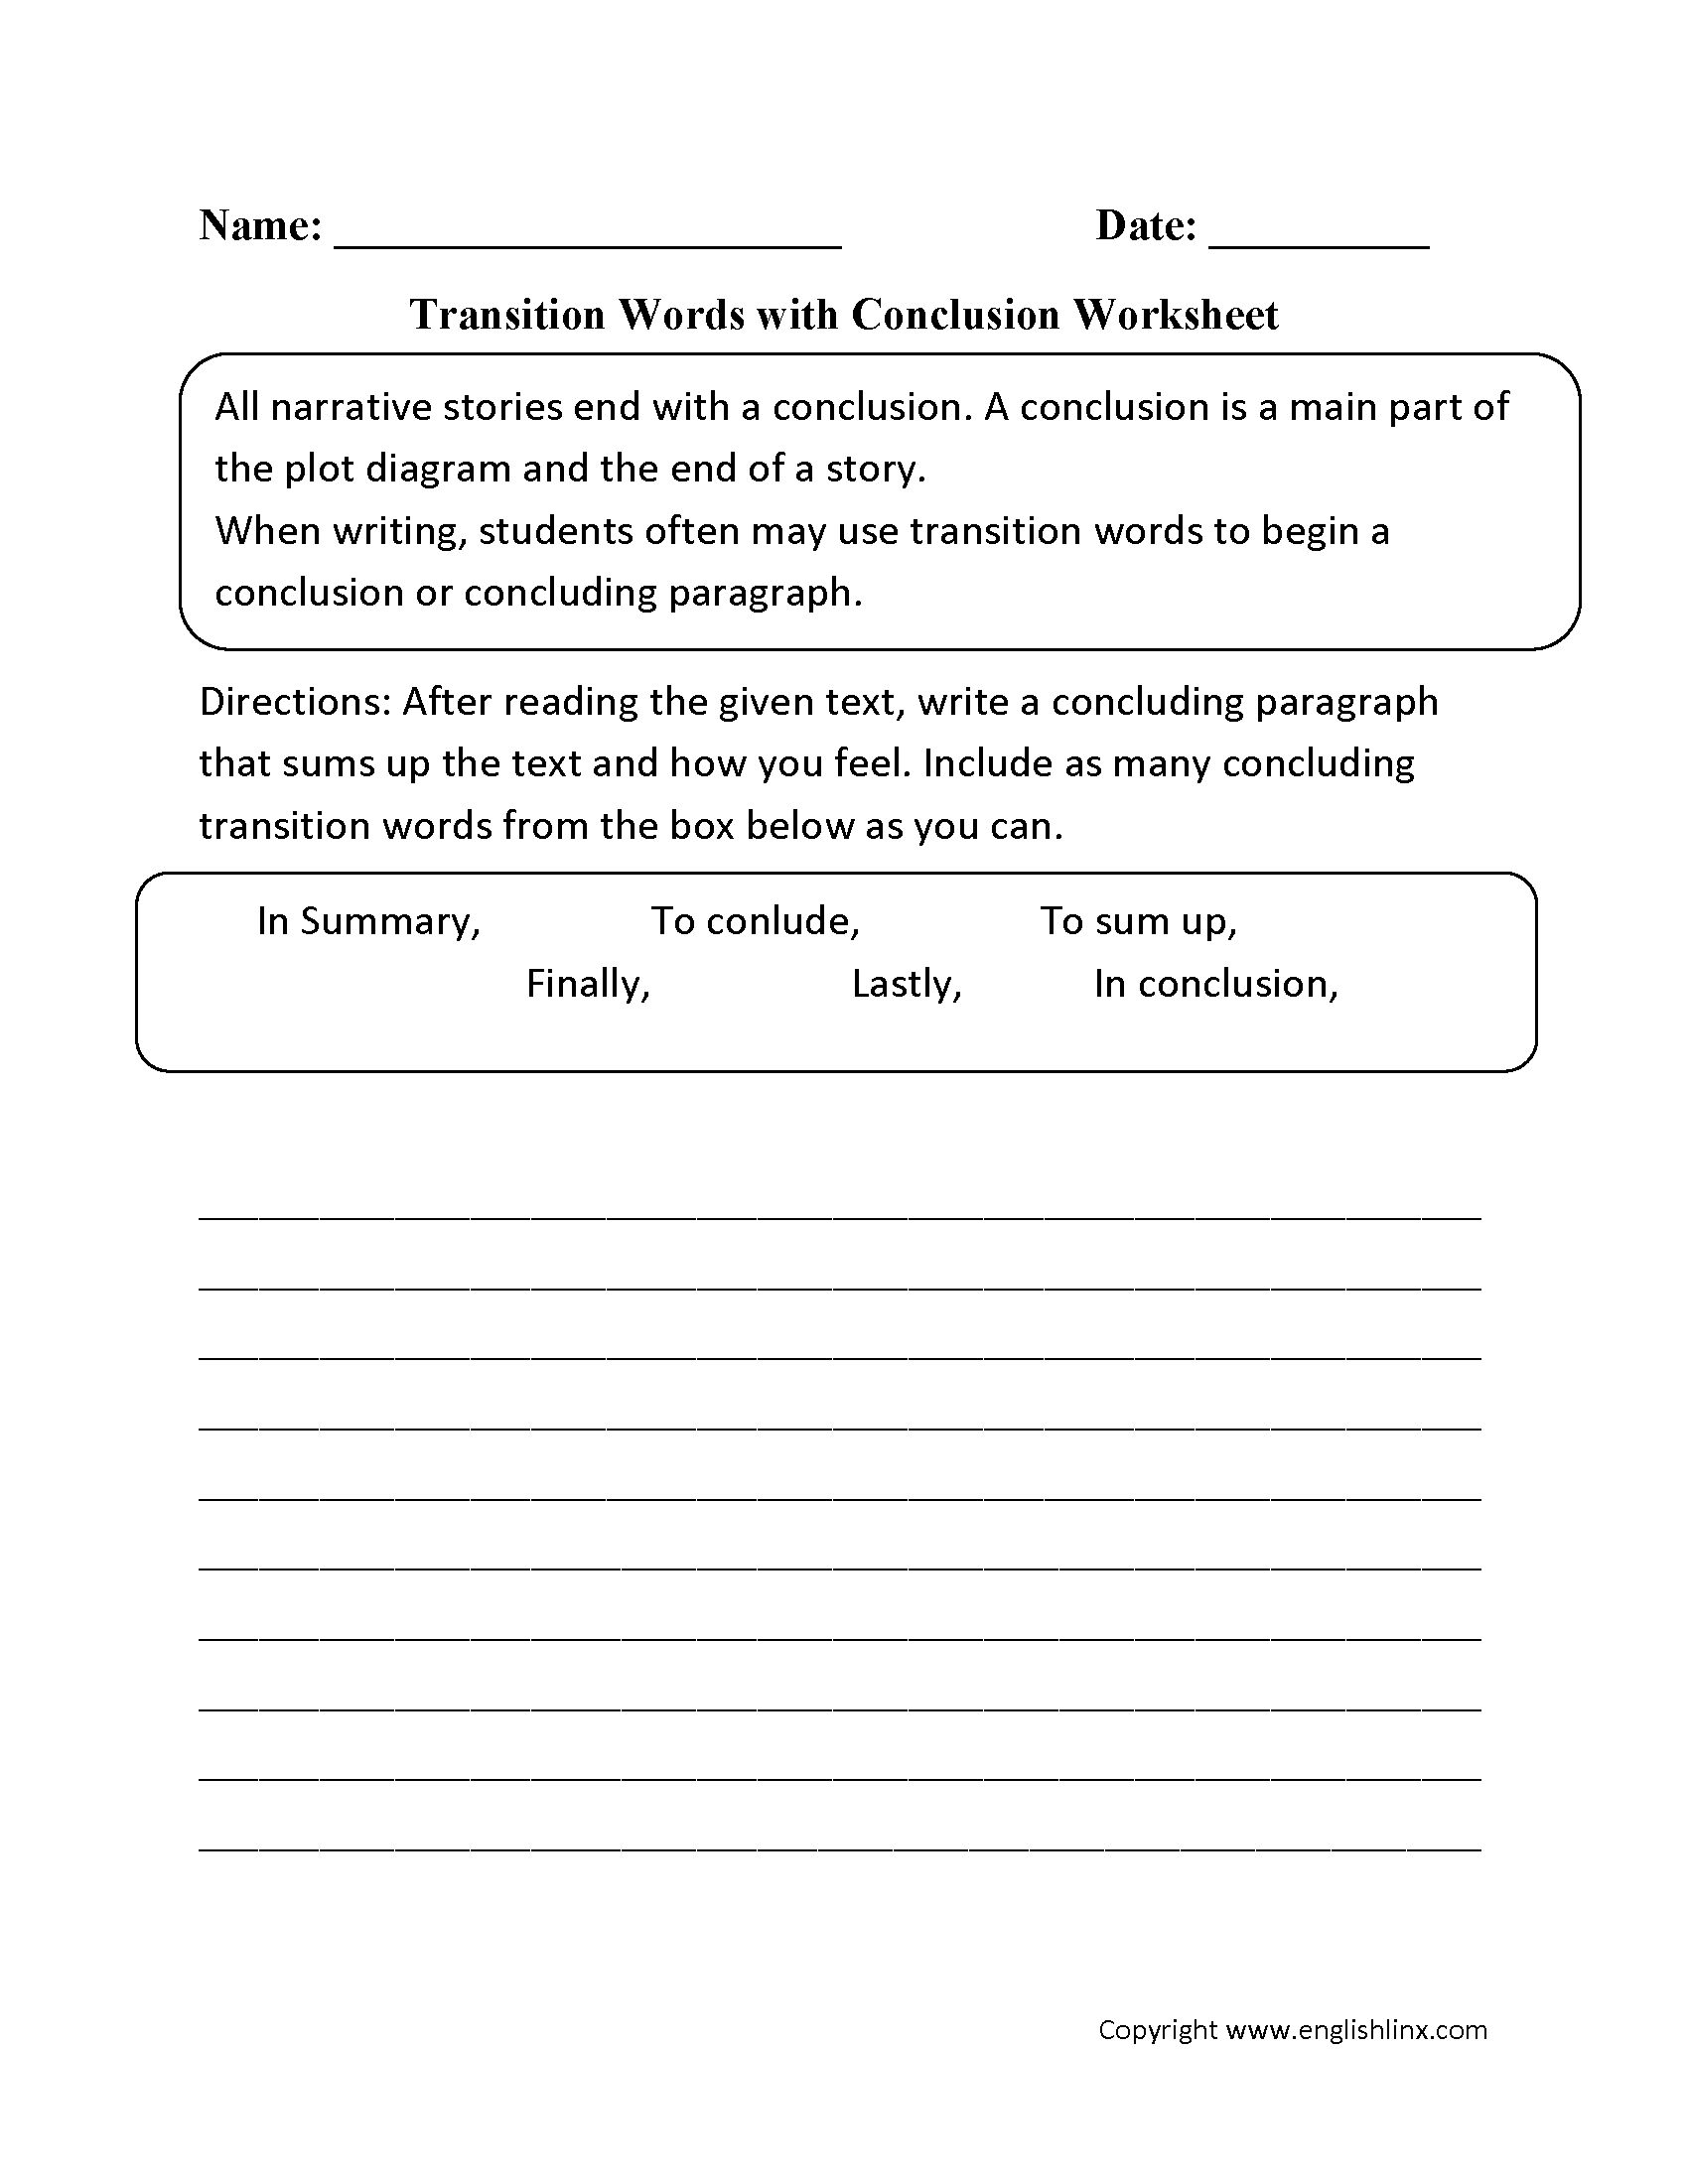 Worksheets Drawing Conclusions Worksheets 5th Grade reading worksheets drawing conclusions conclusion worksheet